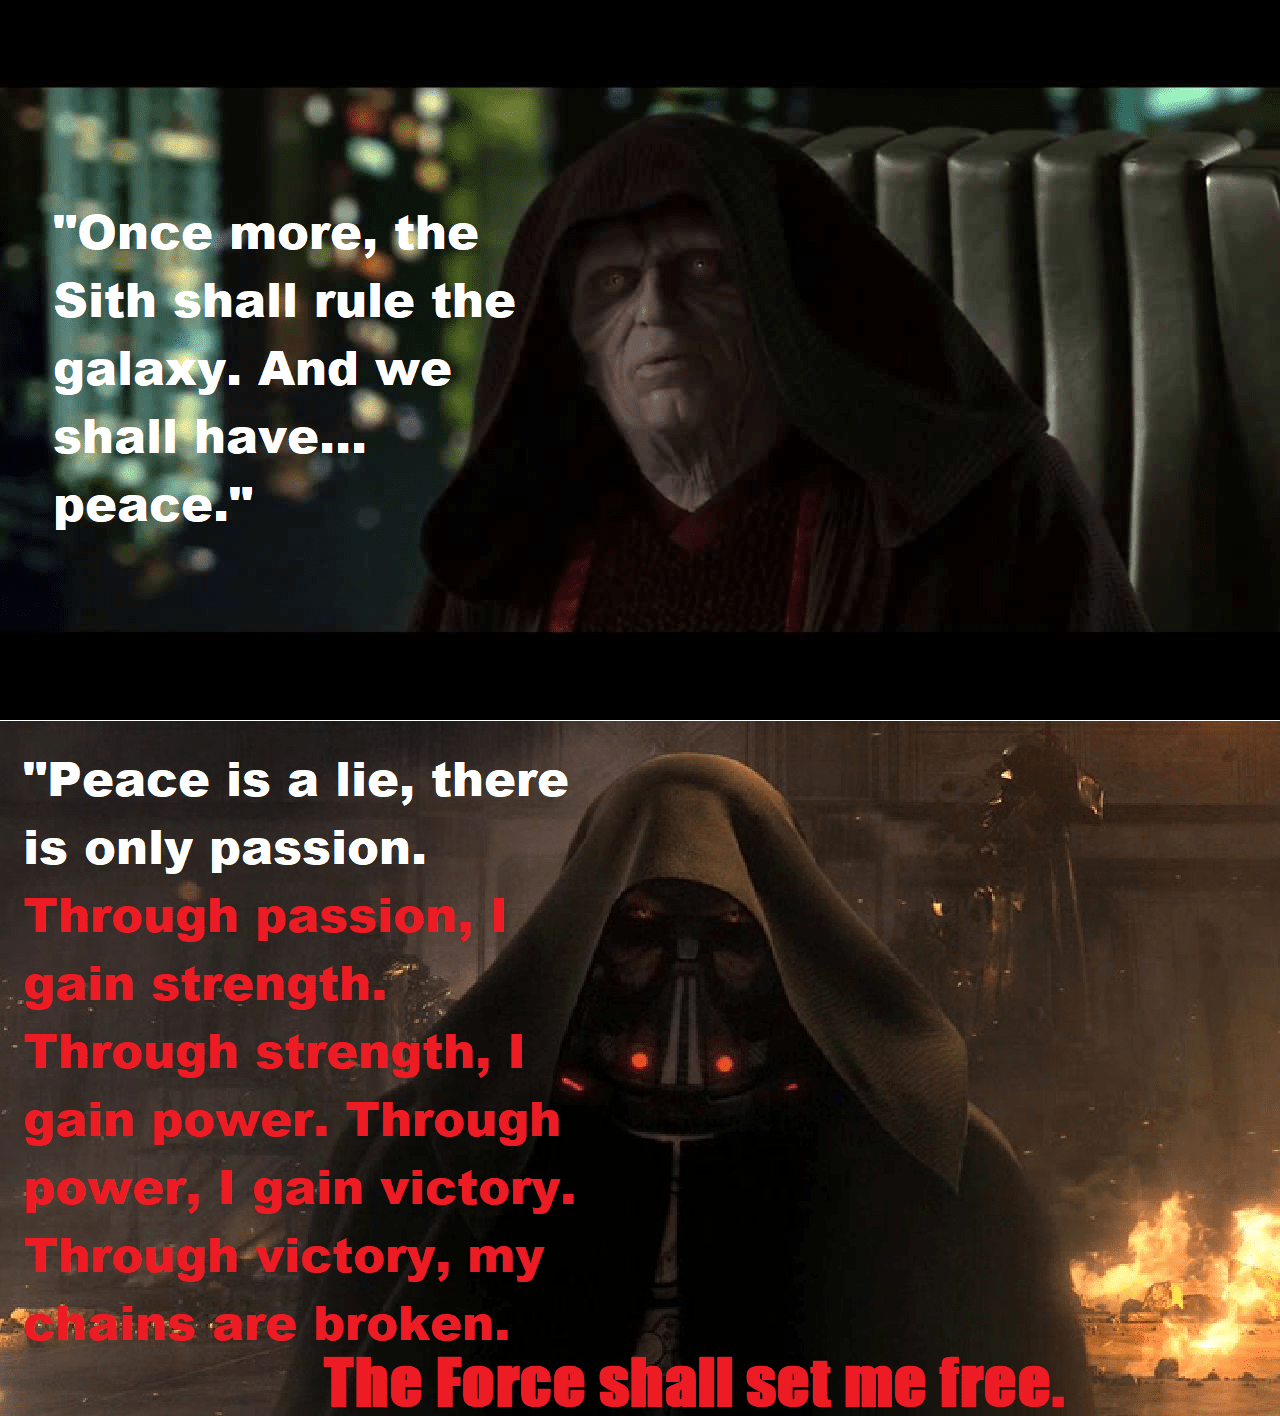 Palpatine convinced Anakin to become a Sith... by going going against the Sith code. [Cross post from r/SWTOR]